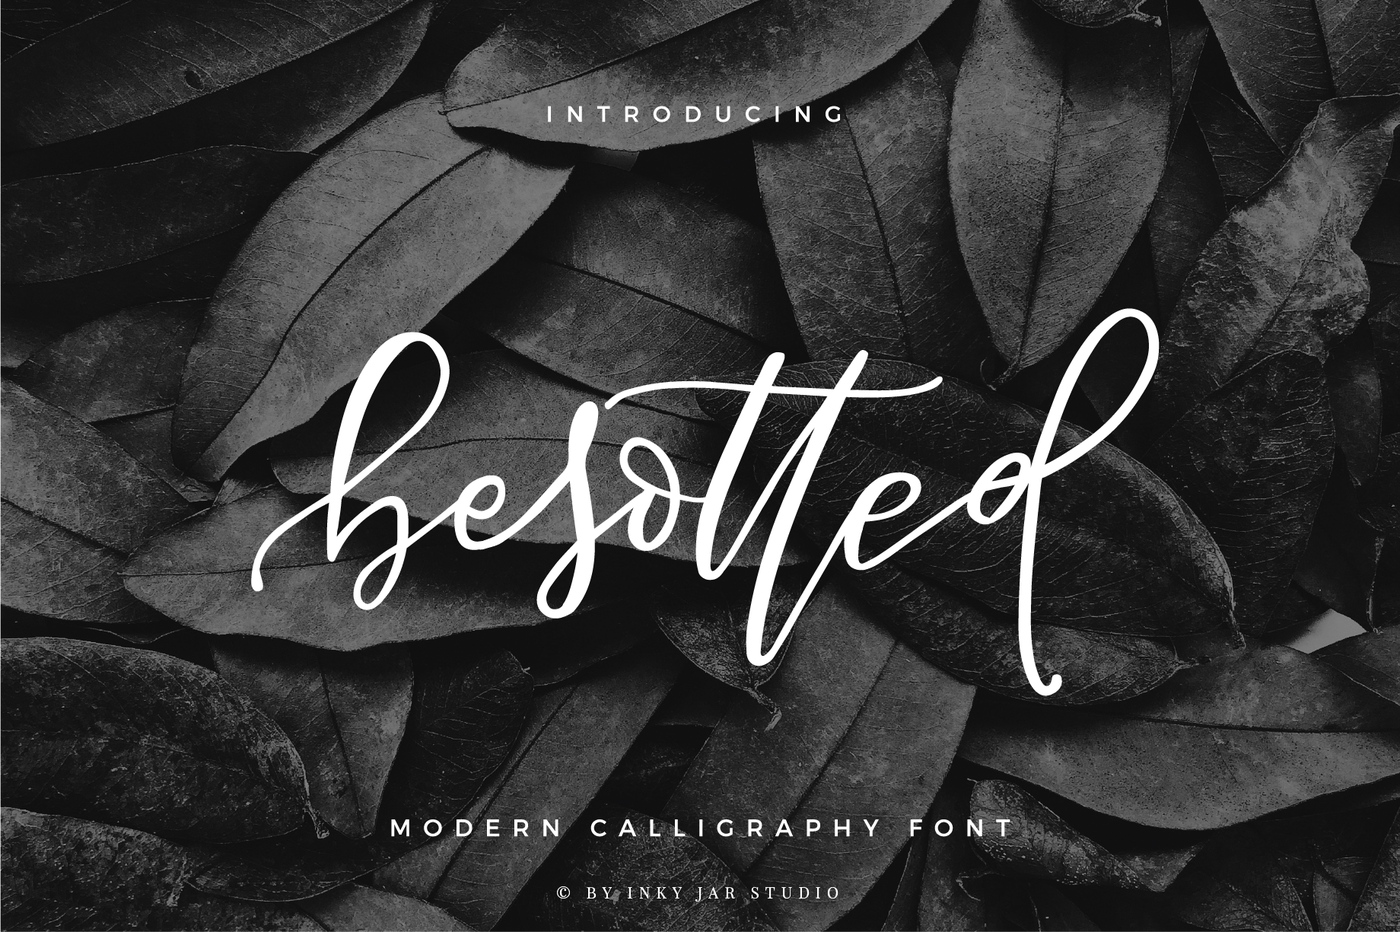 006_Besotted_Bounce_Brush_Script_Calligraphy_Font